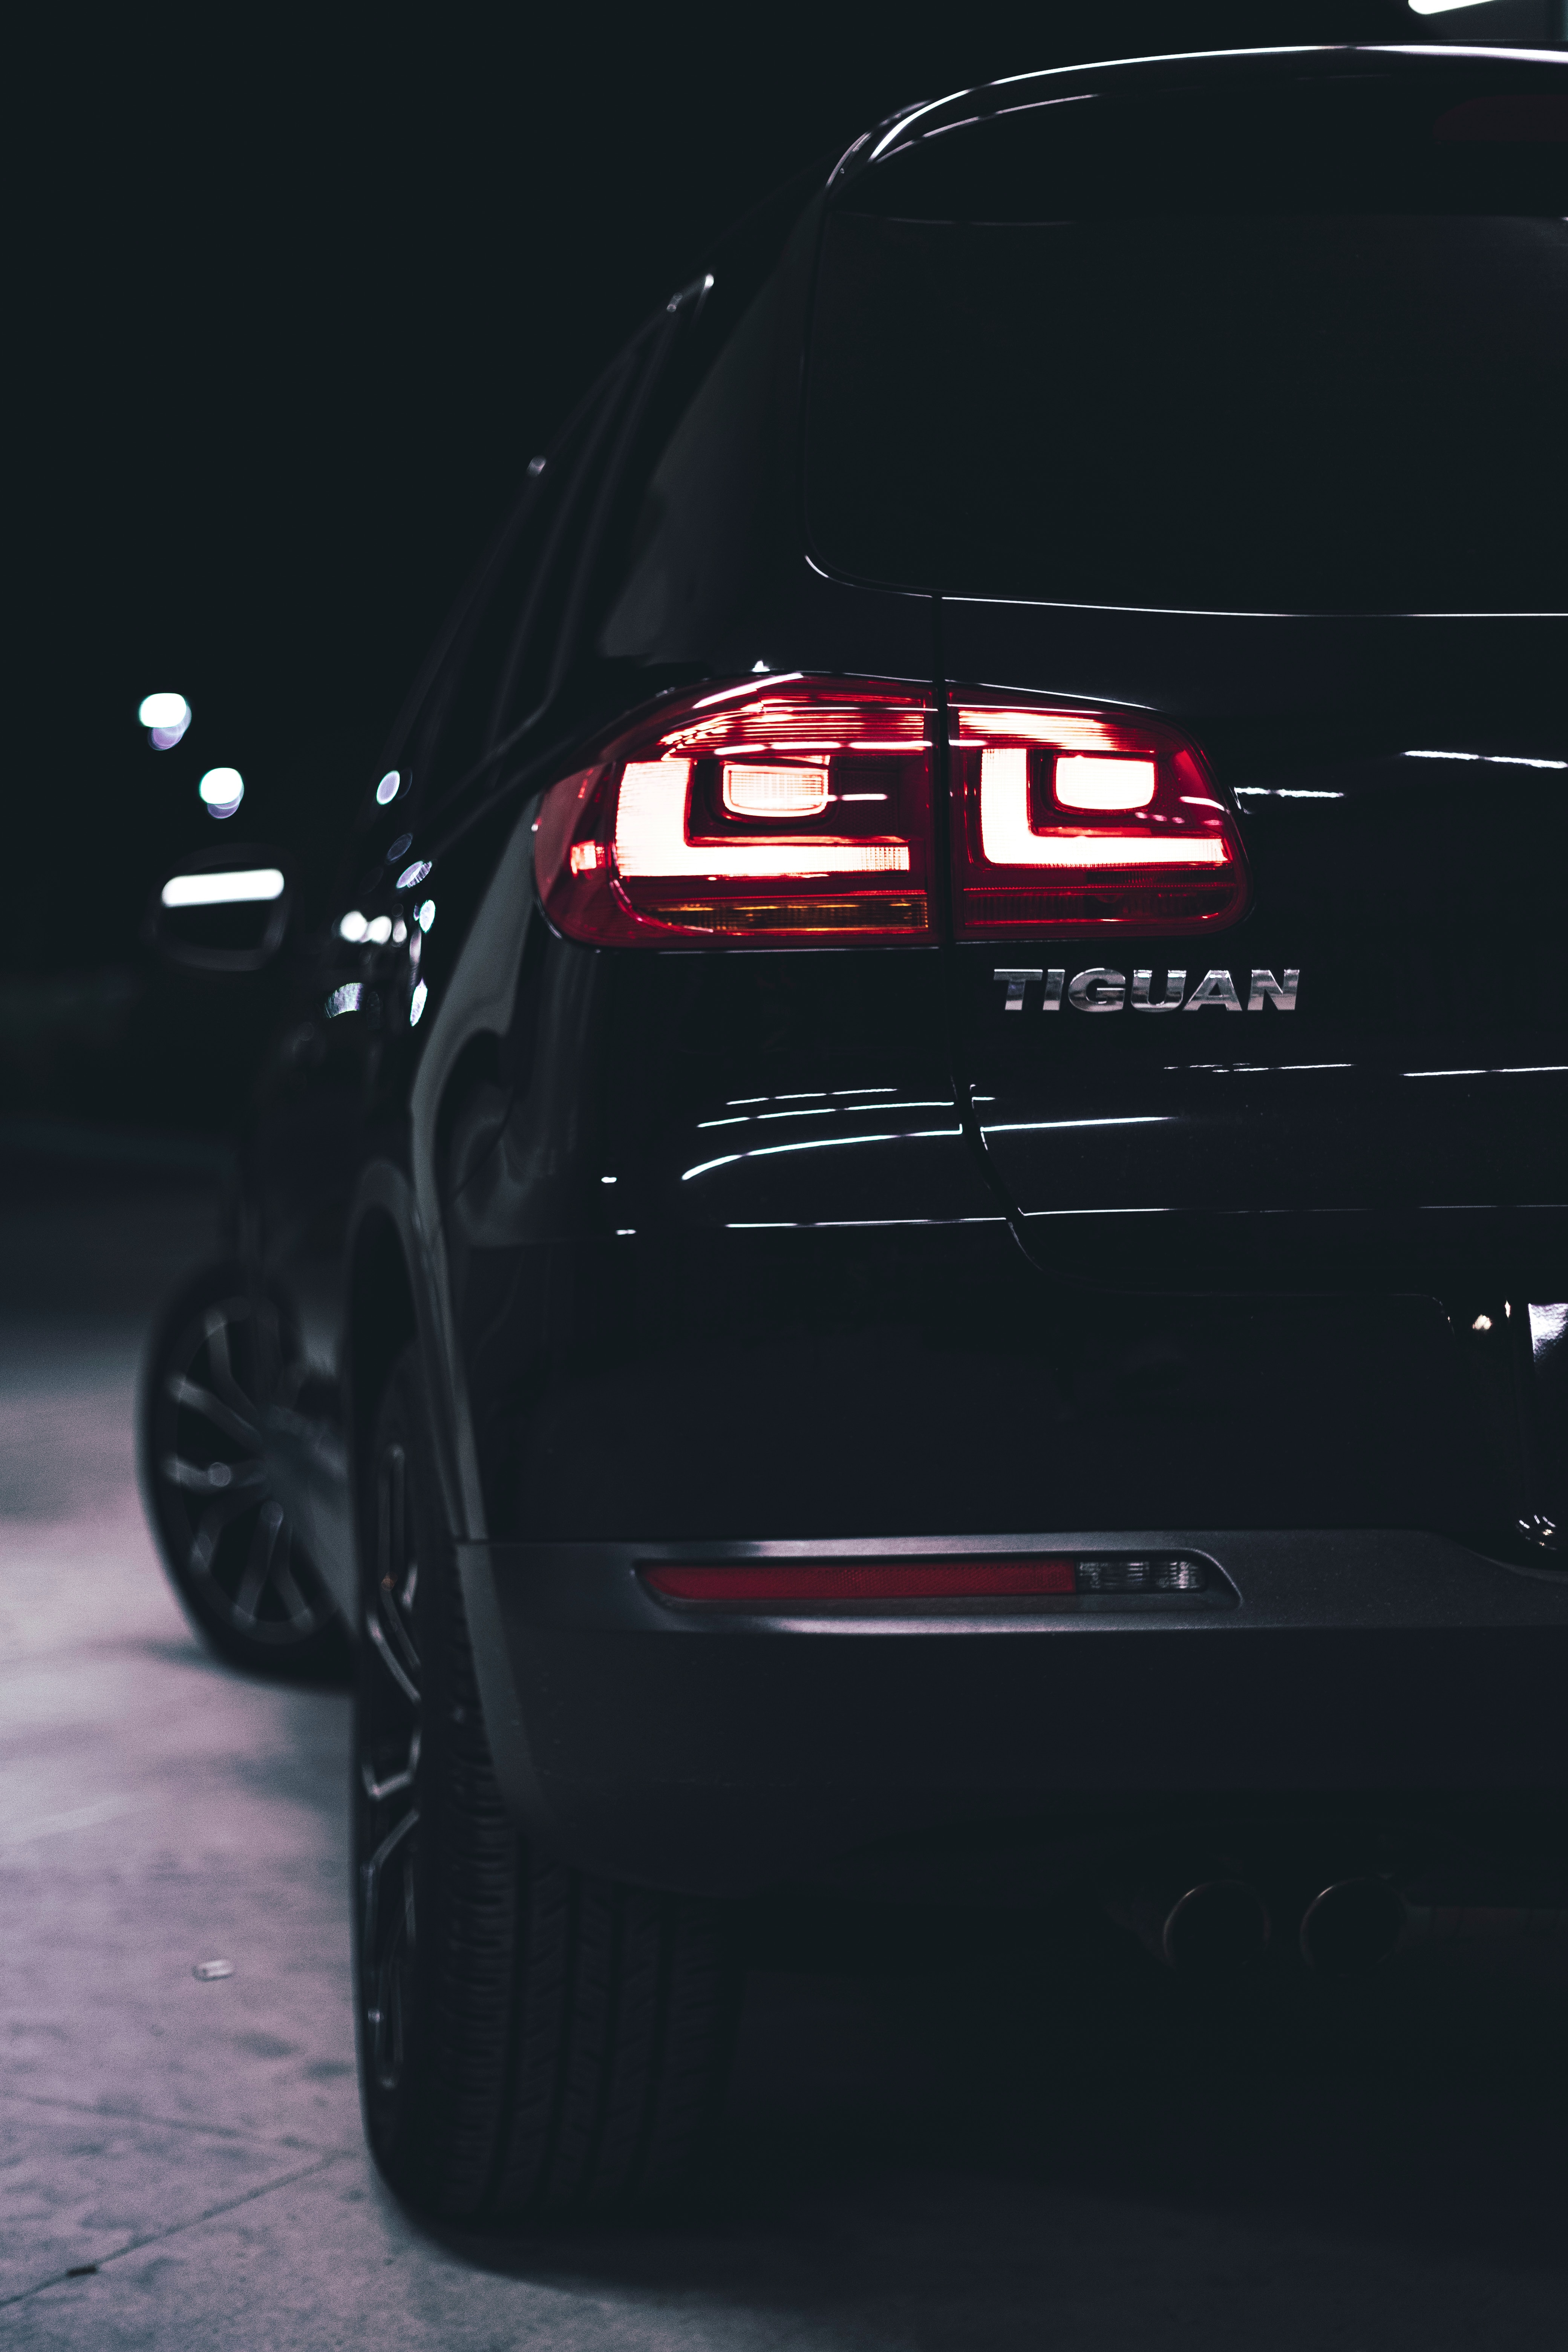 118749 download wallpaper Volkswagen, Cars, Lights, Car, Lanterns, Machine, Backlight, Illumination, Back View, Rear View, Volkswagen Tiguan screensavers and pictures for free